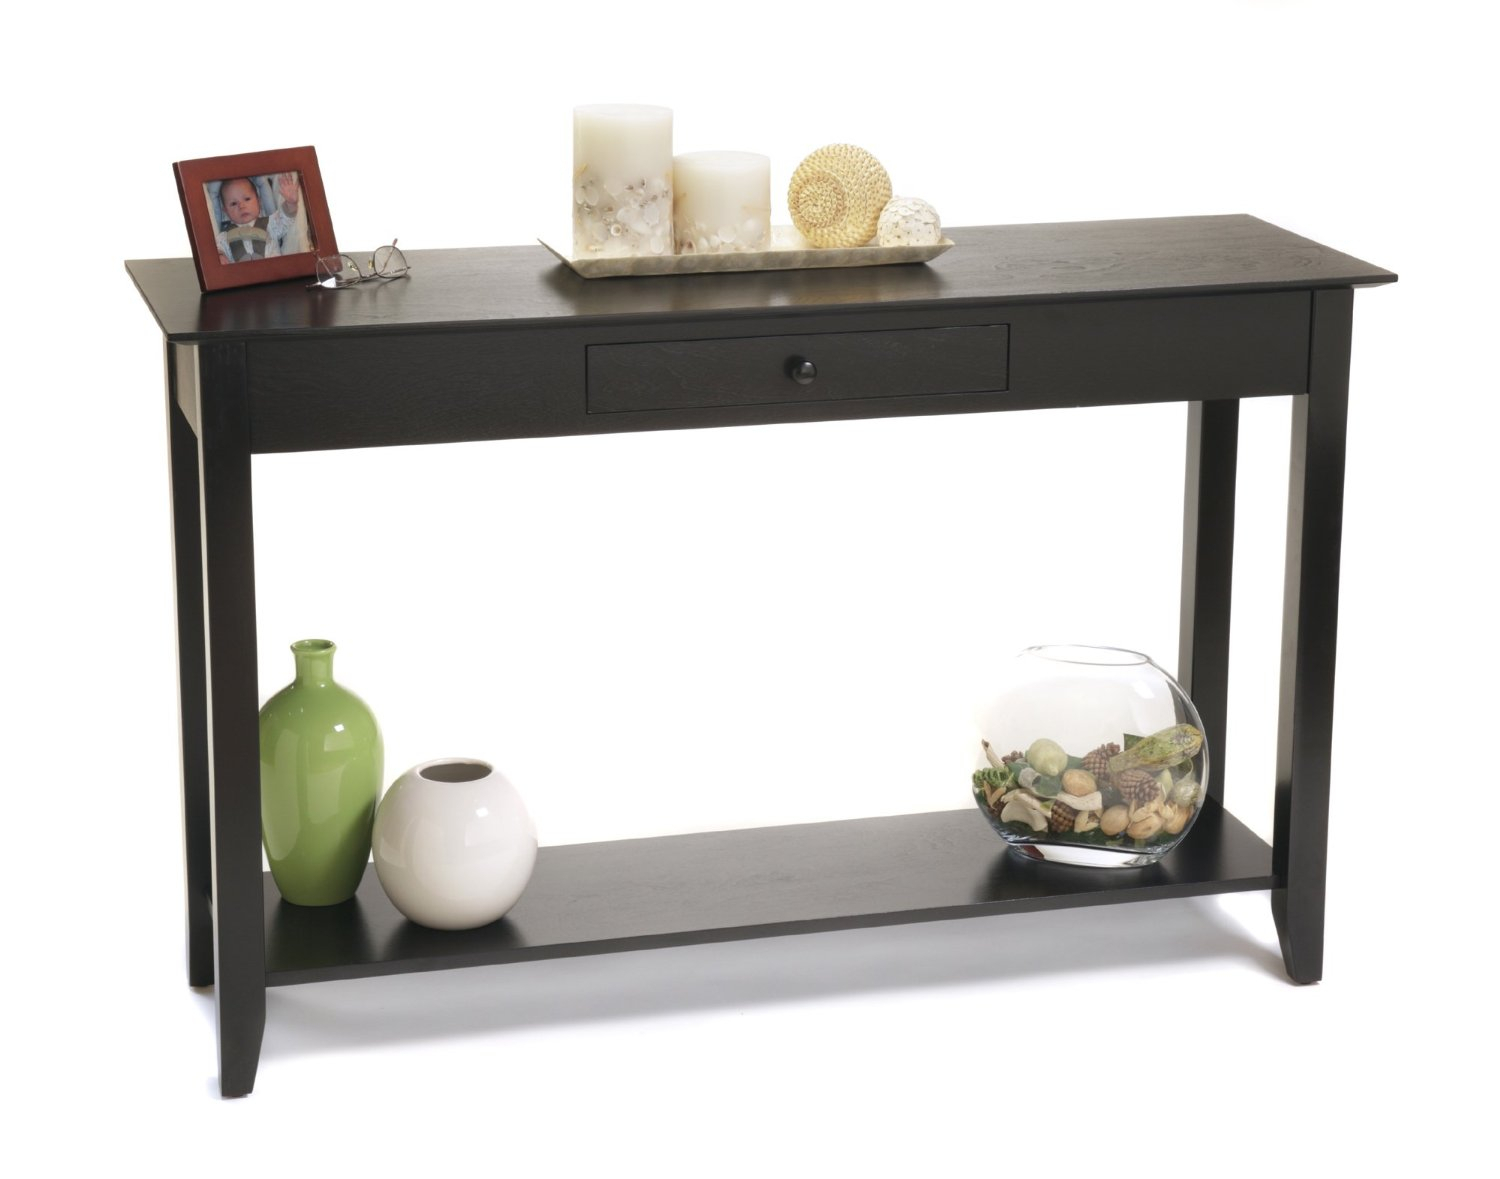 Sofa Table: Amusing Black Sofa Table Ikea Ideas Ikea White Sofa Pertaining To Parsons Black Marble Top & Brass Base 48x16 Console Tables (View 11 of 30)